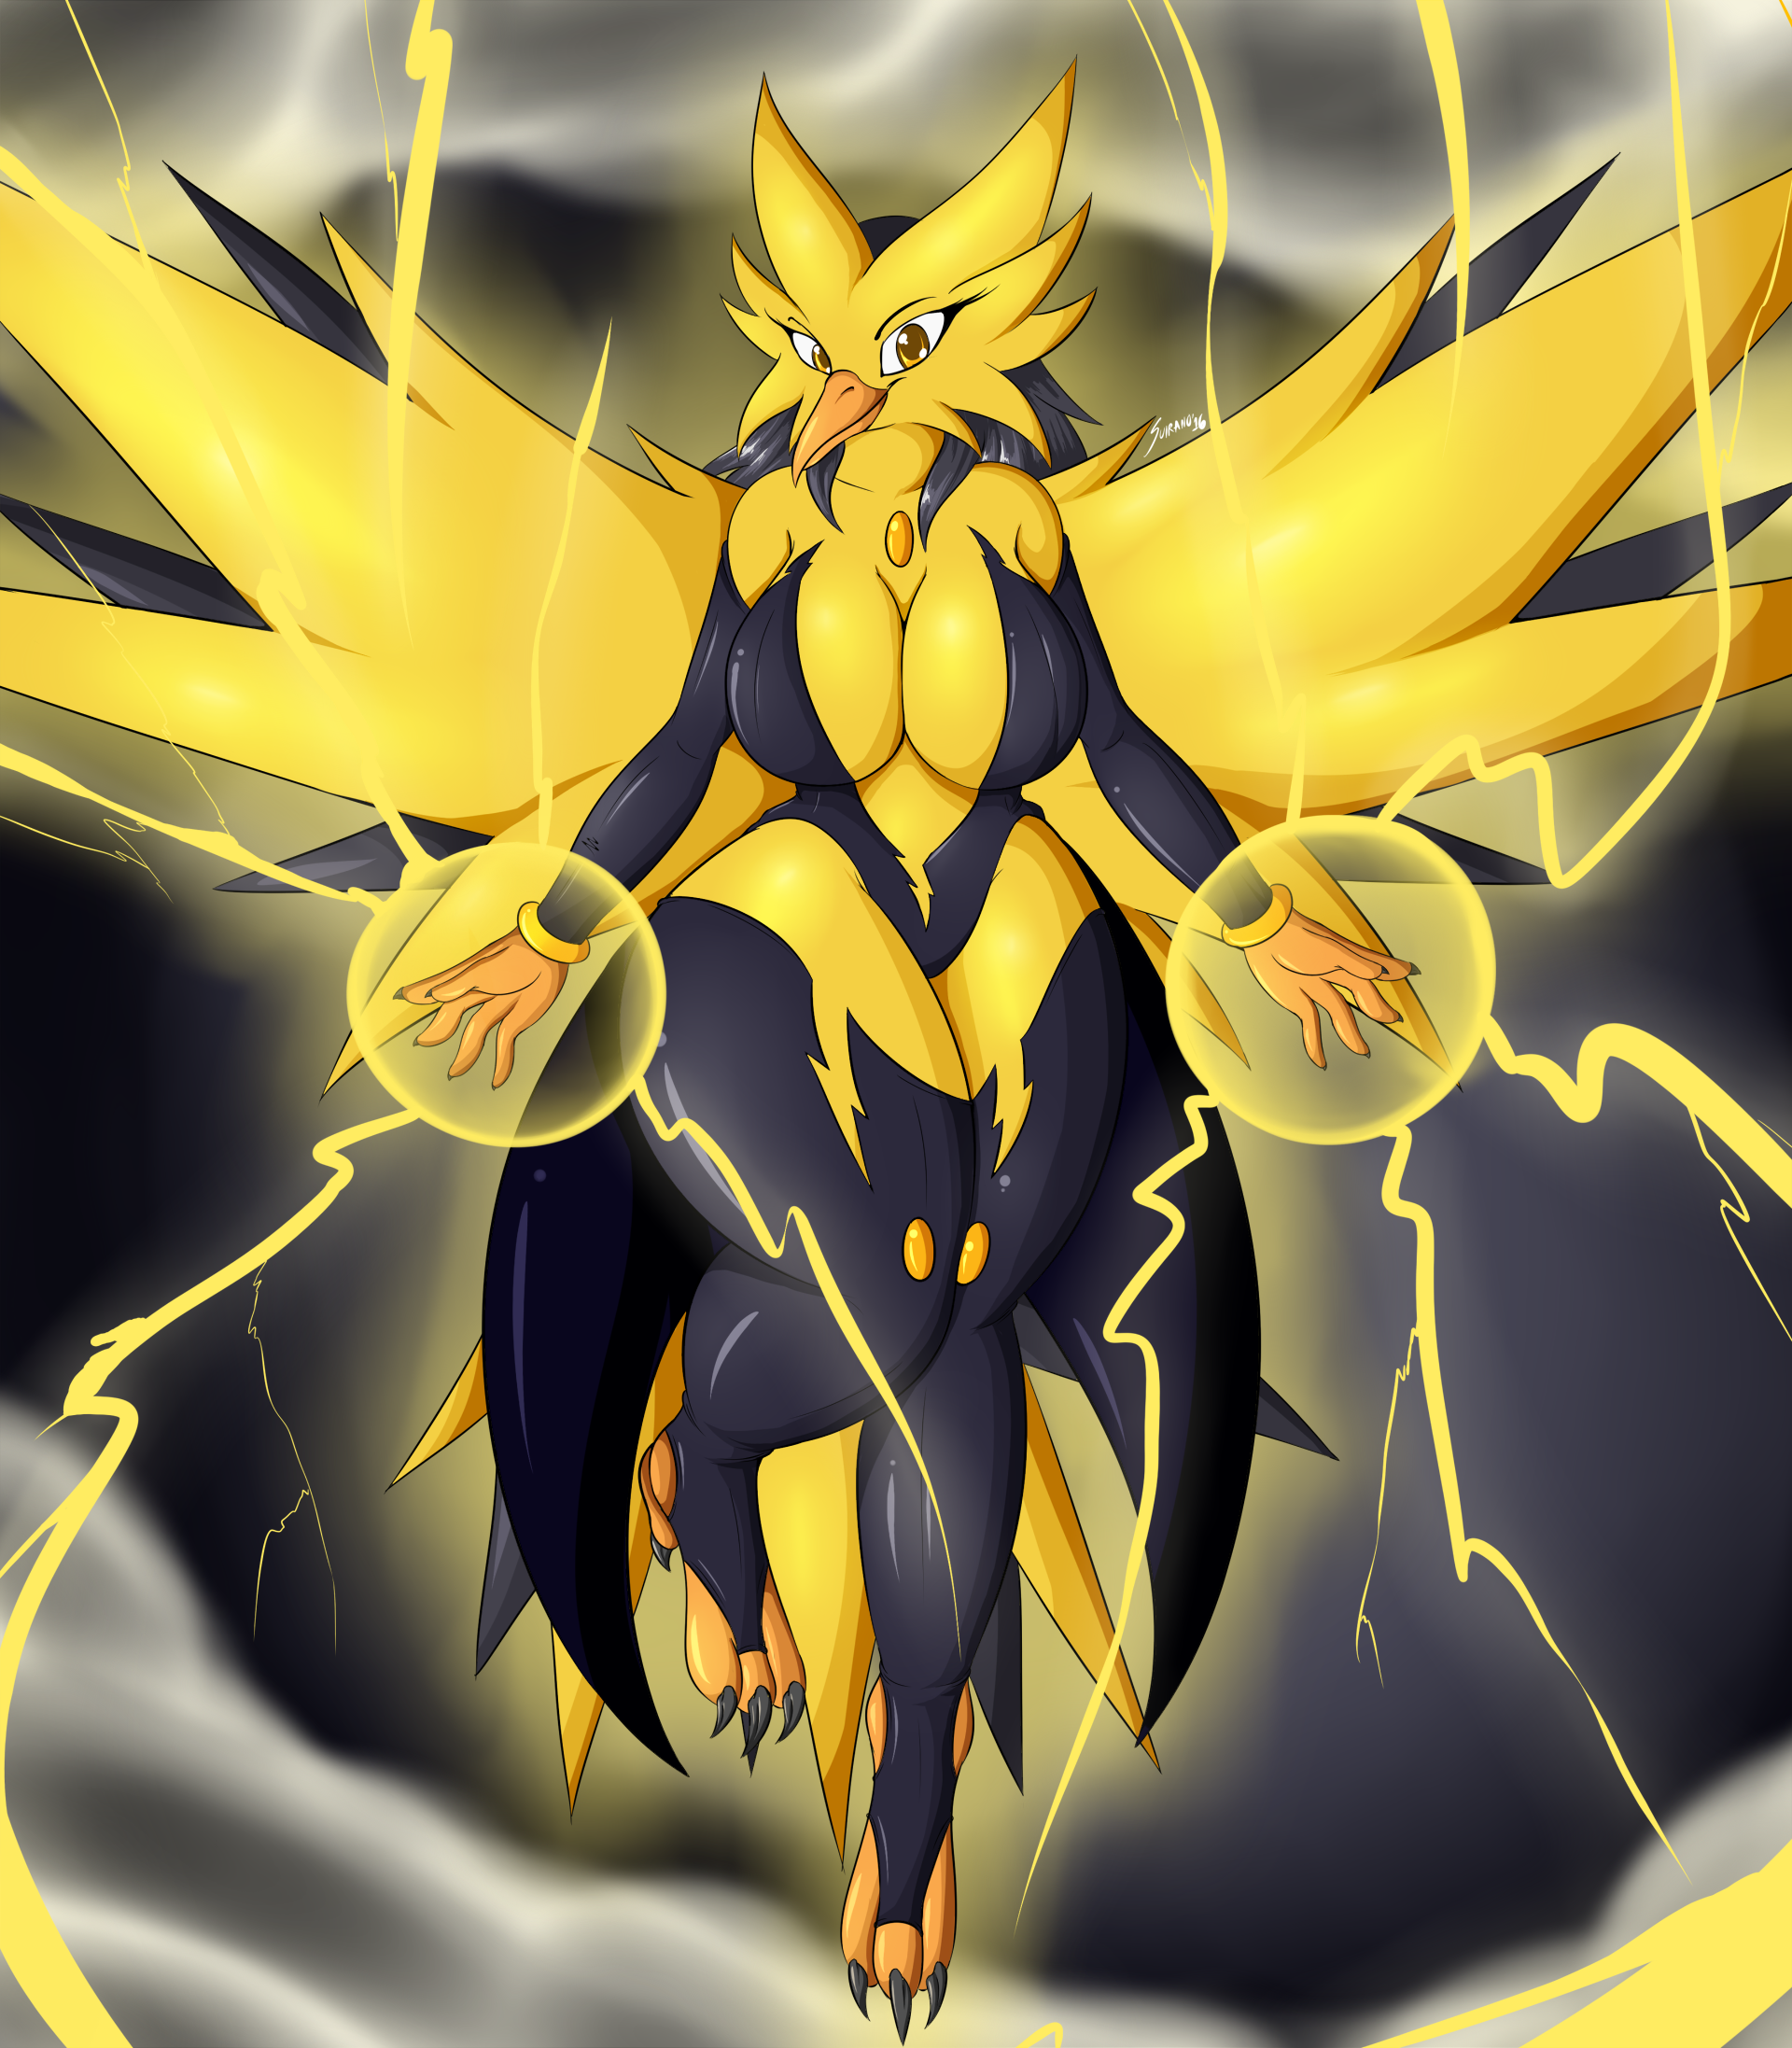 Legendary Pokemon images Arceus HD wallpaper and